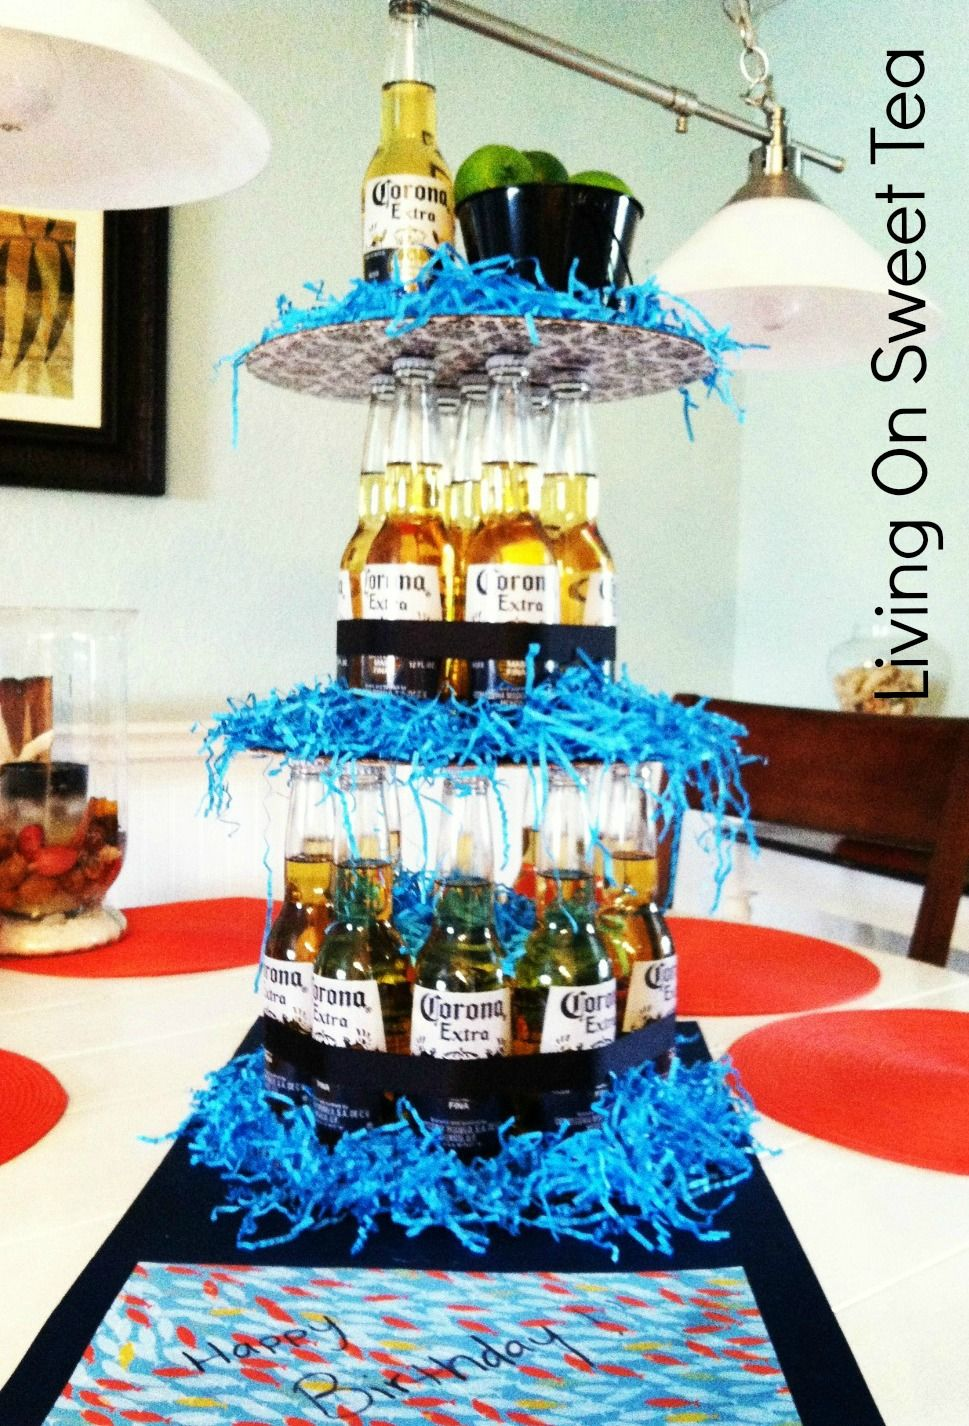 Liquor Bottle Cake Decorations Livin' On Sweet Tea Birthdays  Recipes  Pinterest  Sweet Tea